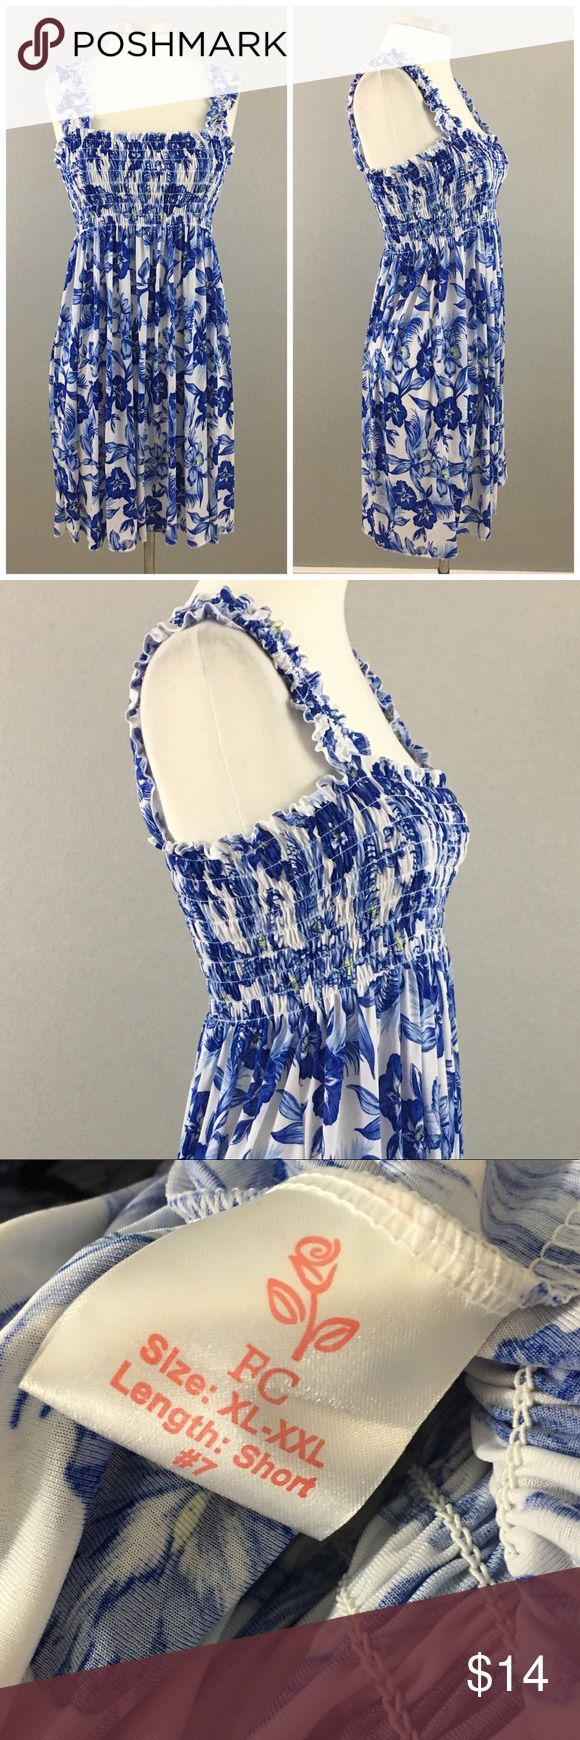 Gorgeous Hawaiian Floral Print Blue White Dress Gorgeous Hawaiian Floral Print Blue White Dress. Size XL. Dress hits slightly above the knee in length.   Thank you for looking at my listing. Please feel free to comment with any questions (no trades/modeling).  •Condition: EUC, no visible flaws.   25% off all Bundles or 3+ items! Reasonable offers welcome. Visit me on INSTA @reupfashions. JC world market Dresses Midi